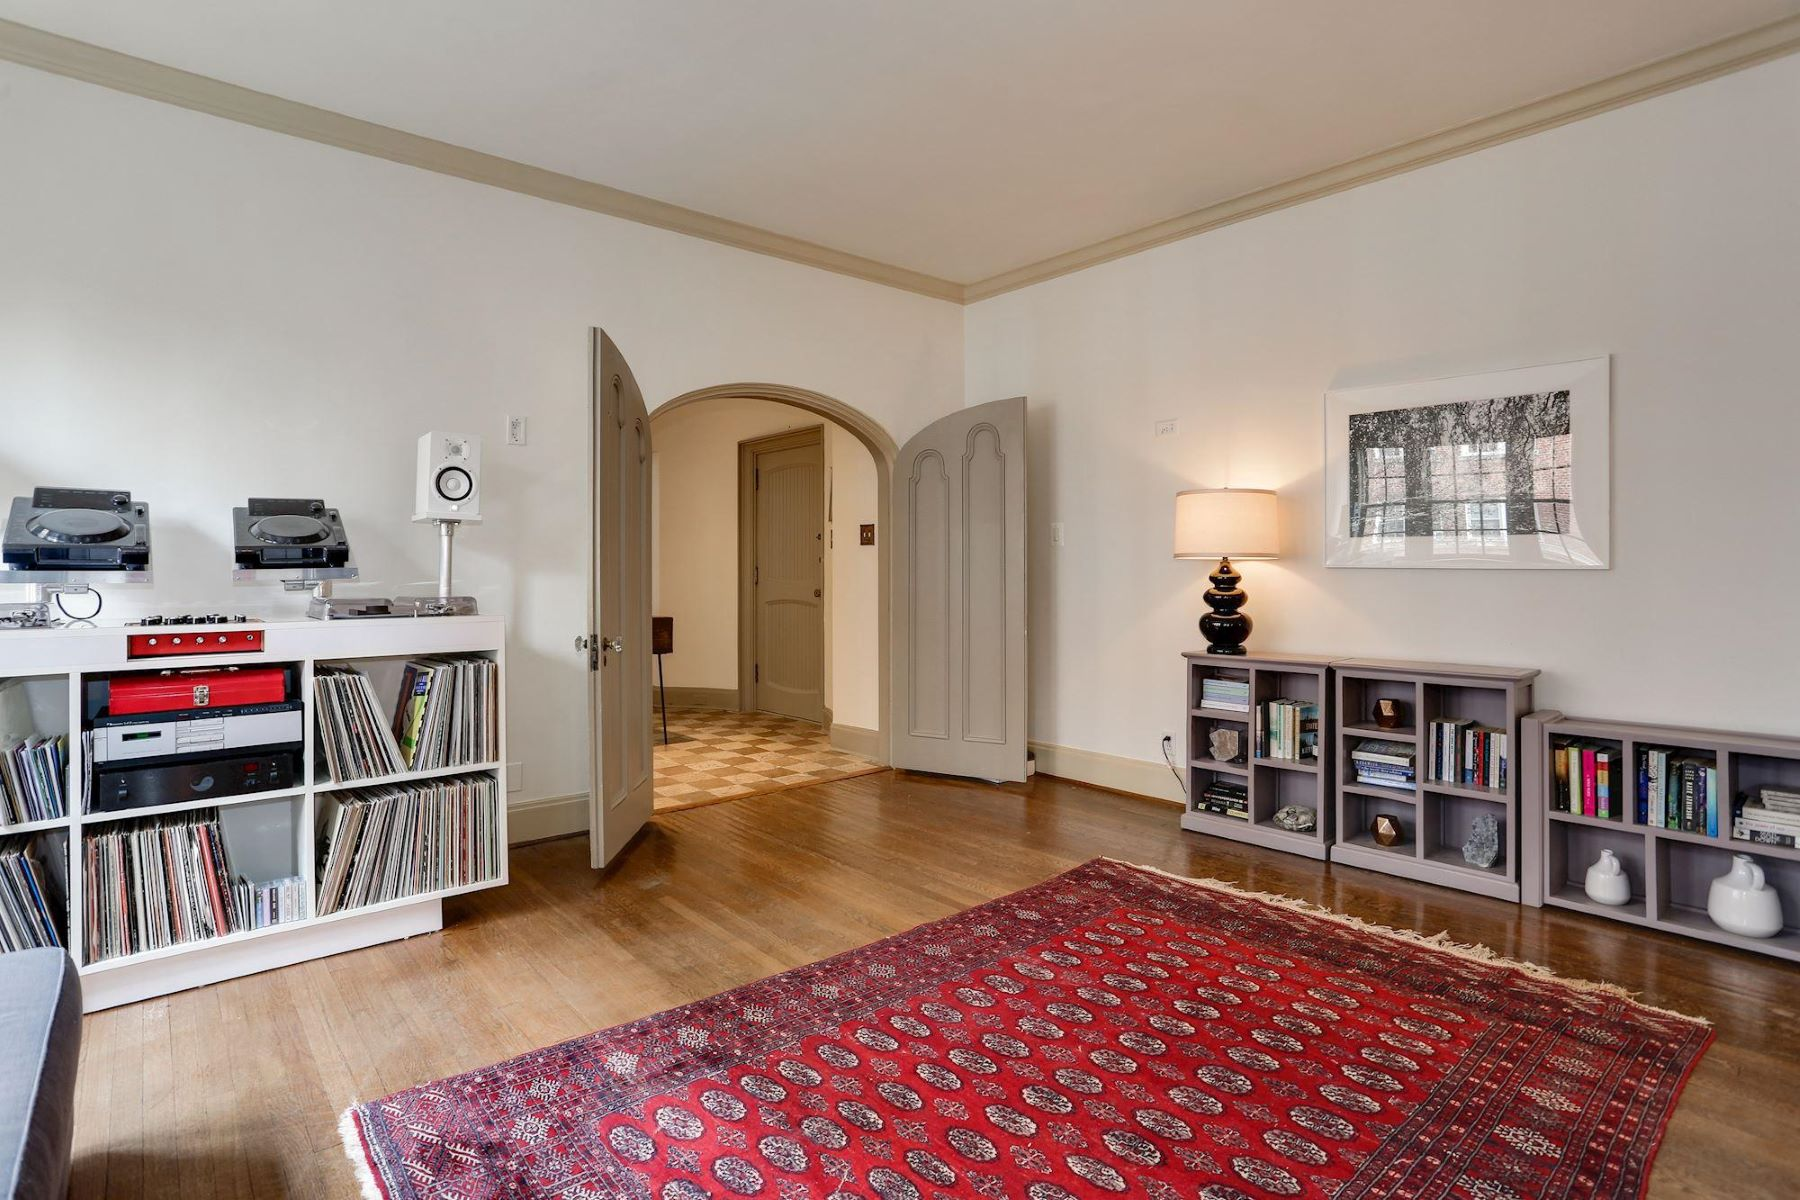 Additional photo for property listing at 1661 Crescent Pl NW #309/209 Washington, District Of Columbia 20009 United States